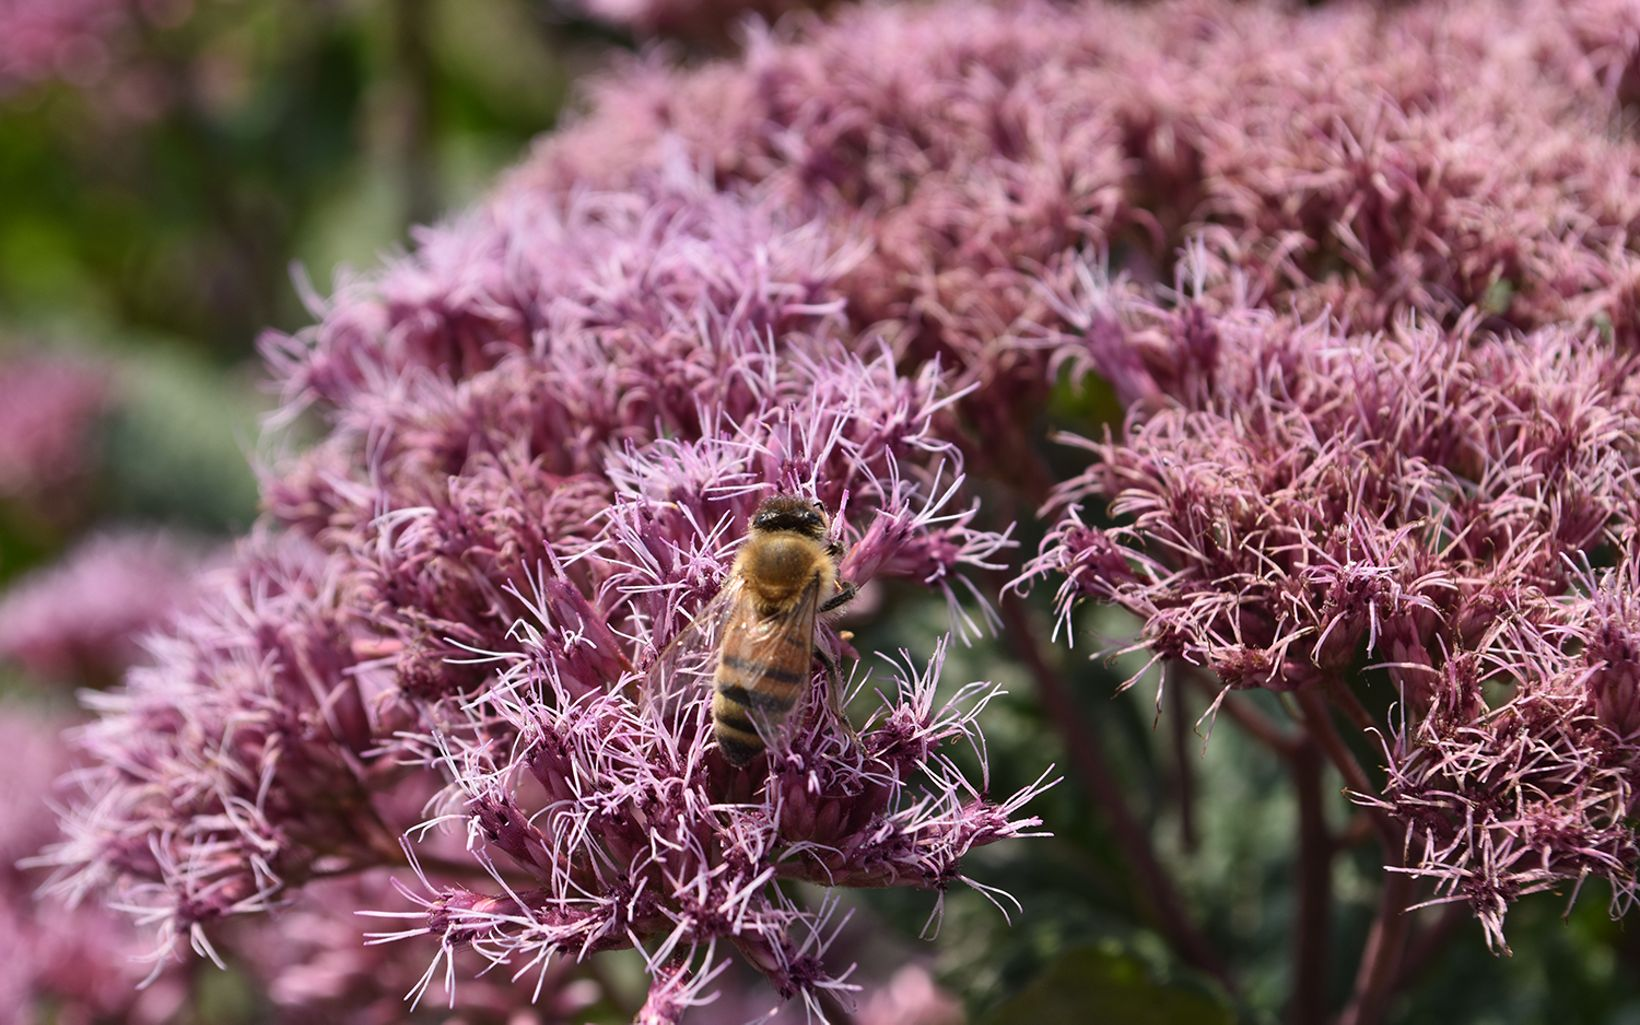 A bee lands on brightly colored flowers